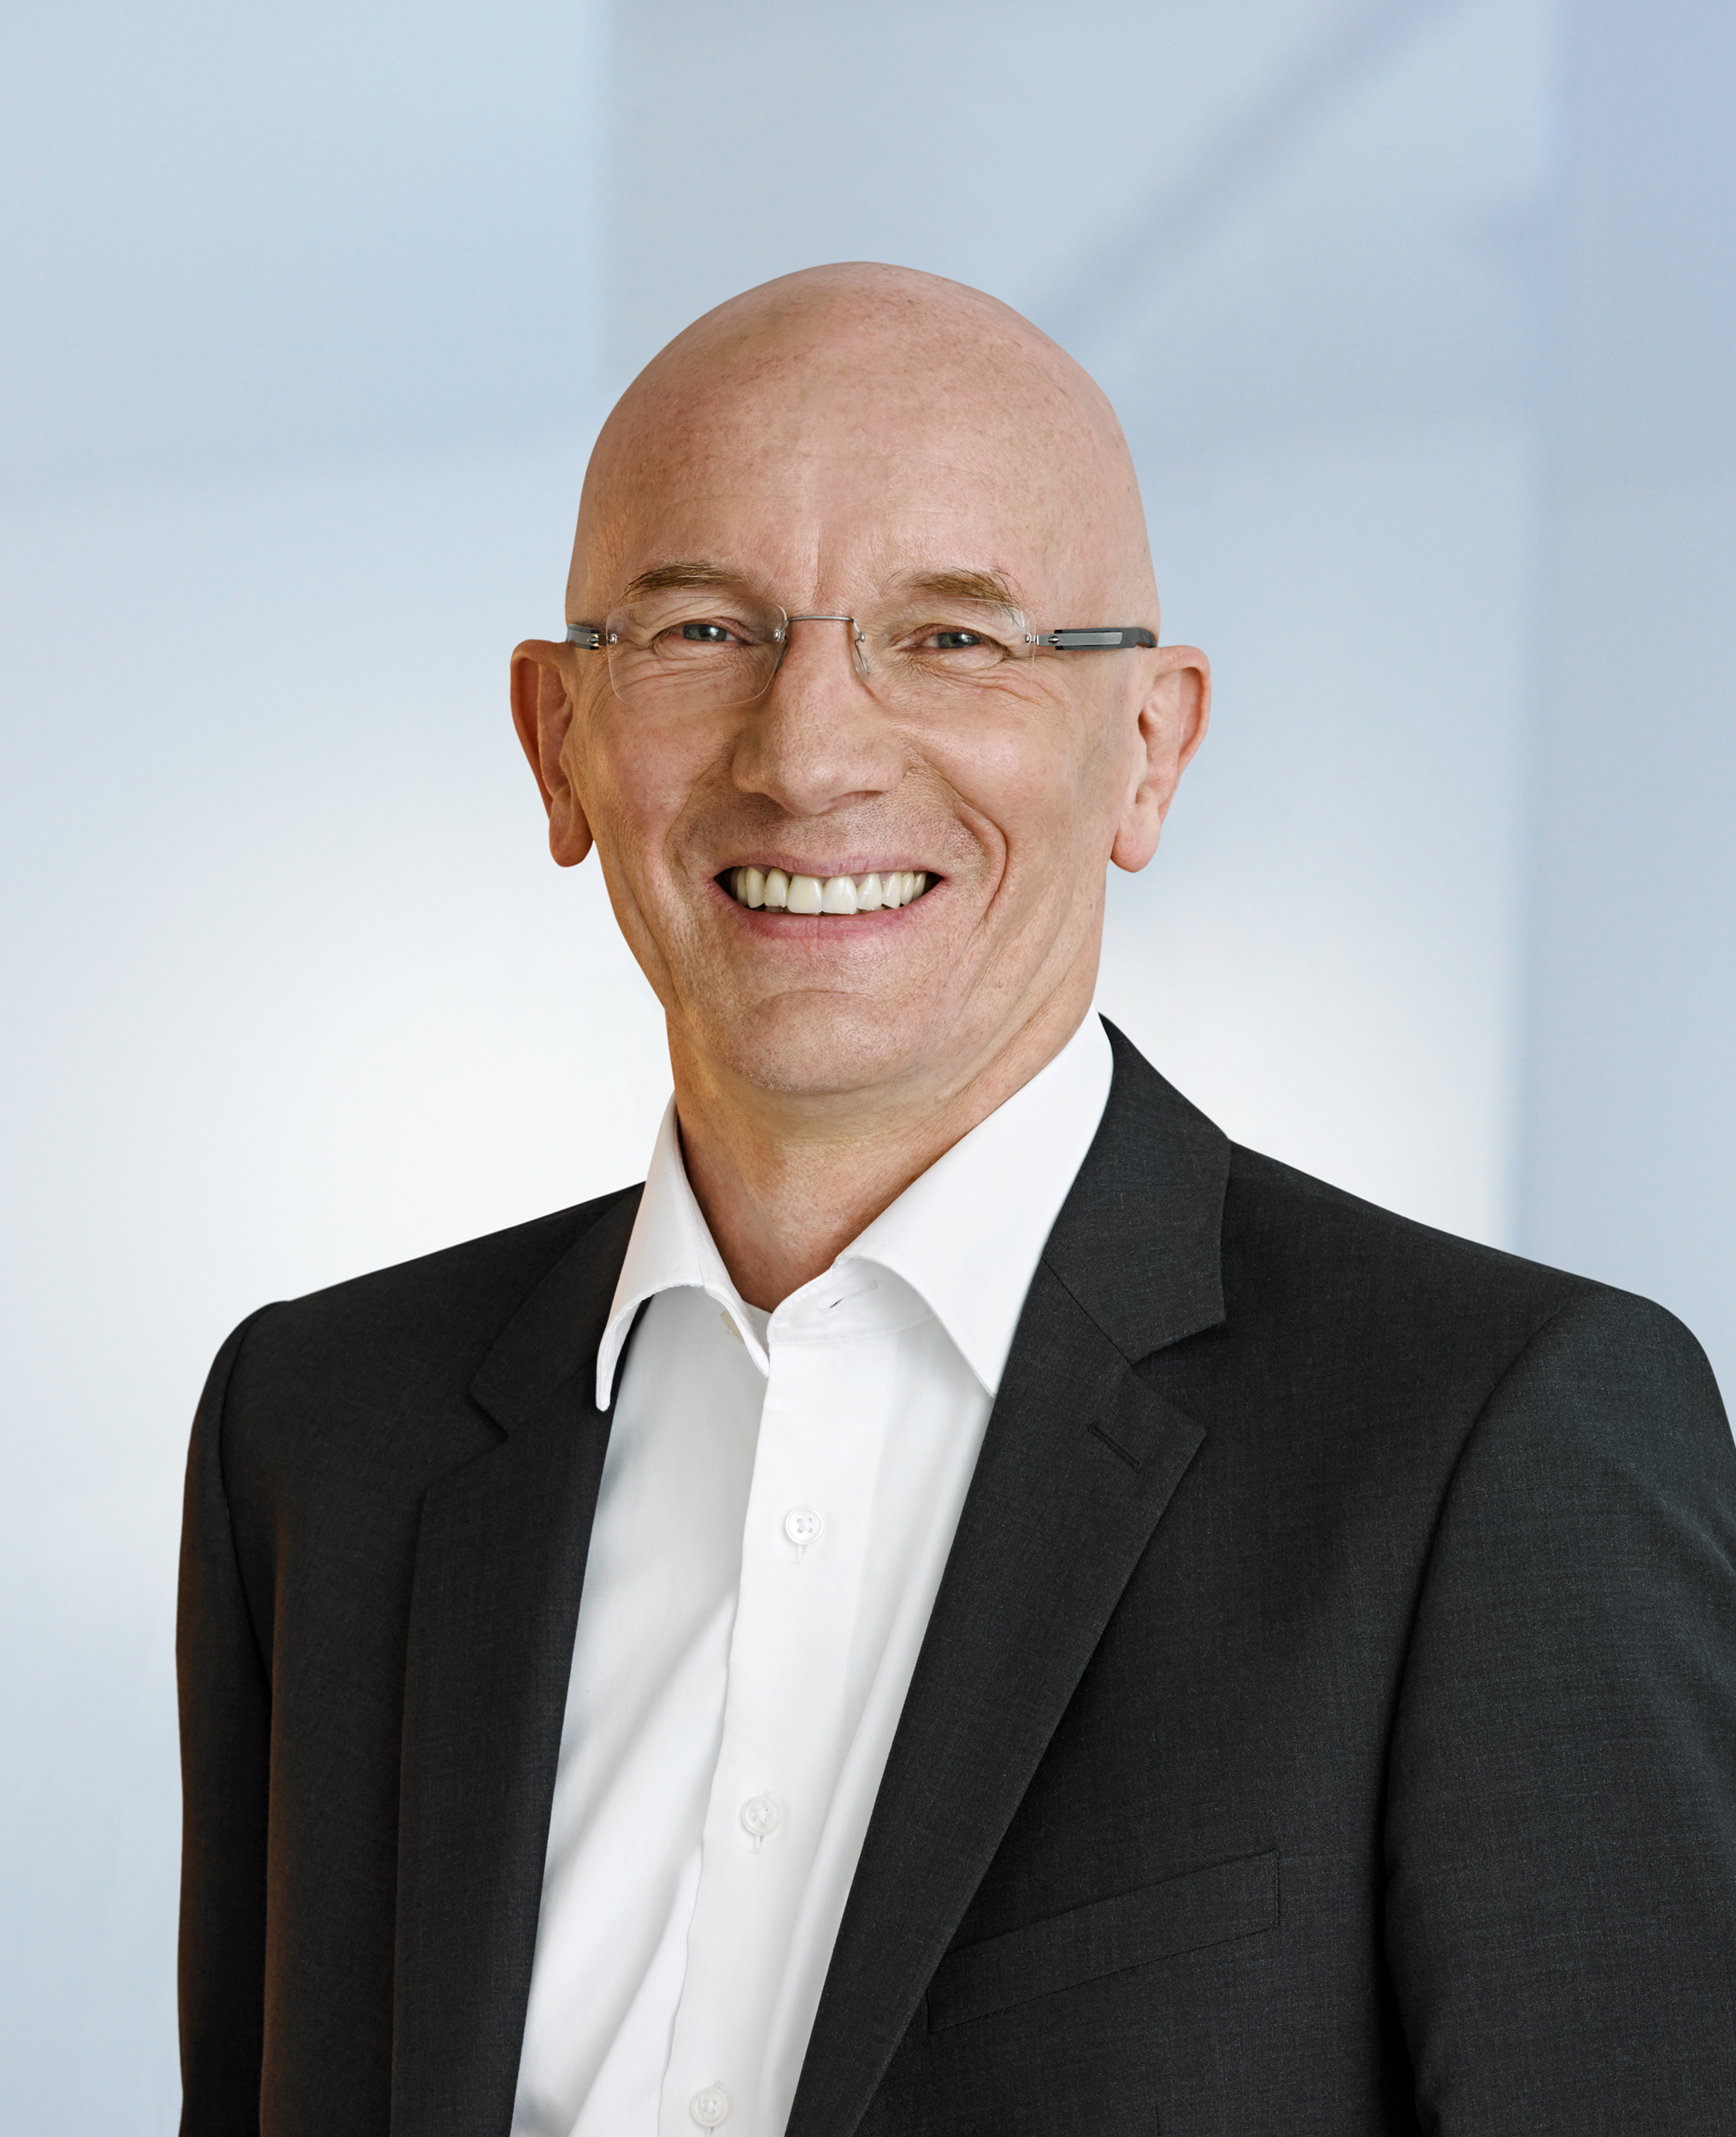 Heiko Hutmacher, Chief Human Resources Officer